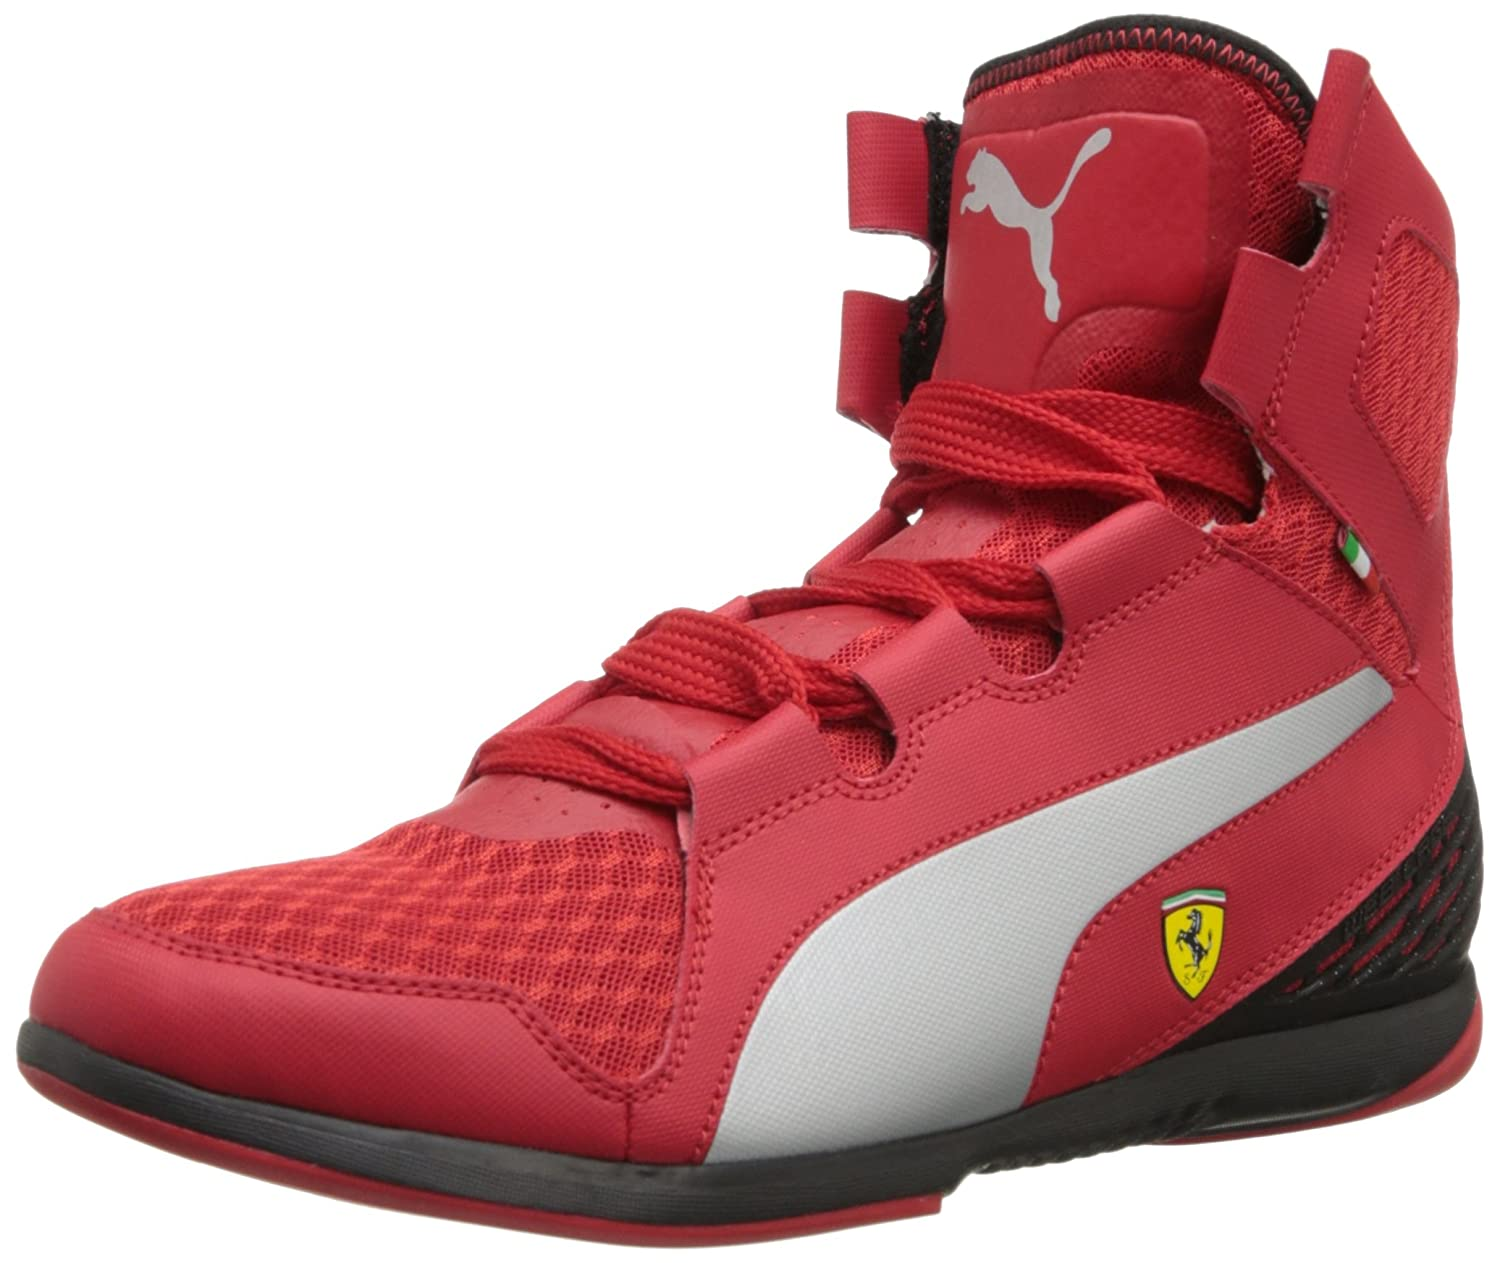 Buy Puma Ferrari High Ankle Shoes